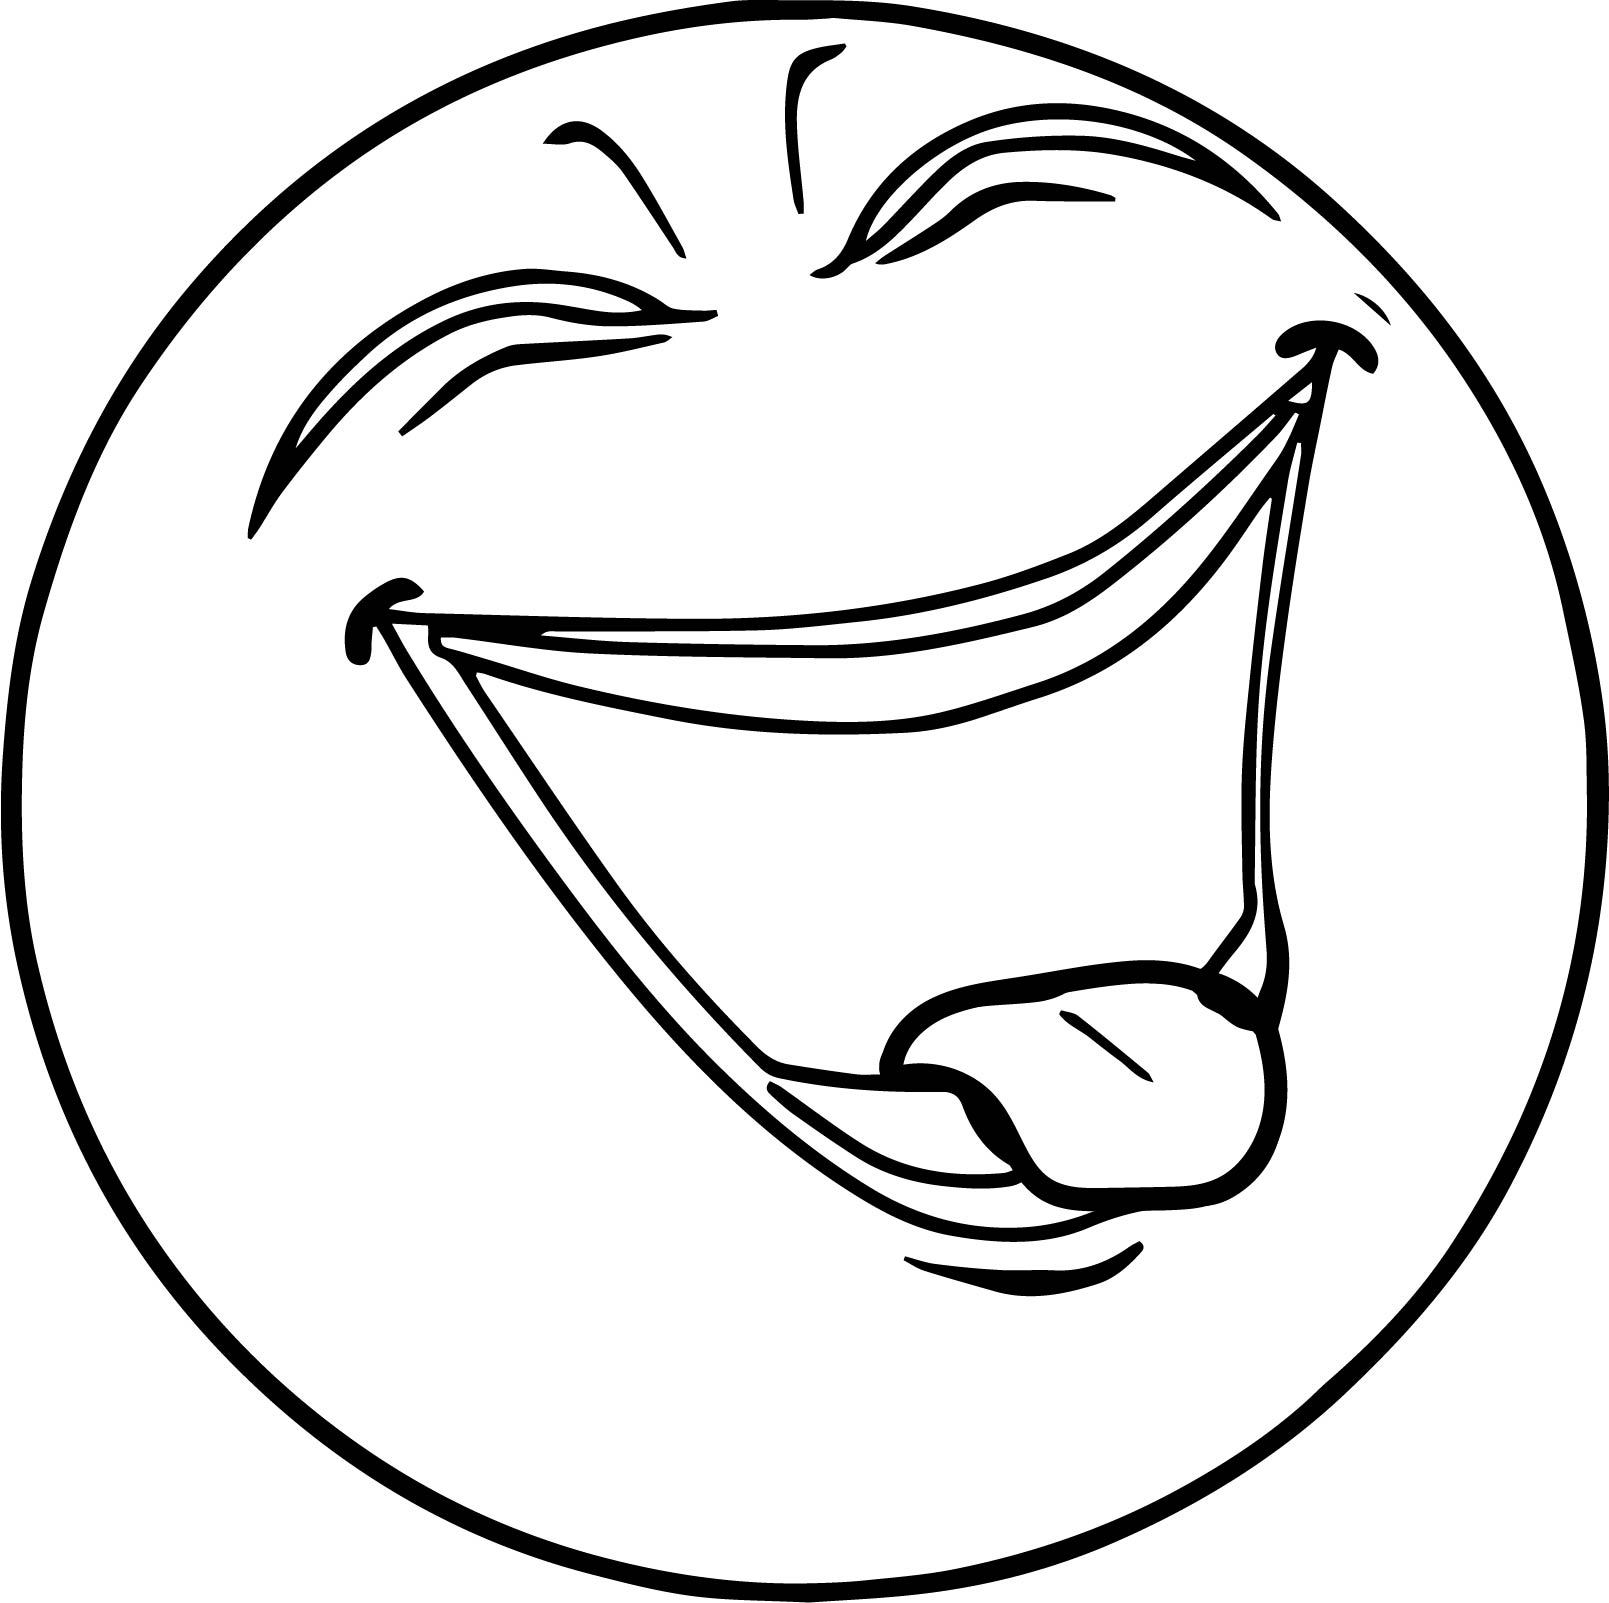 Smiley Face Coloring Pages 3